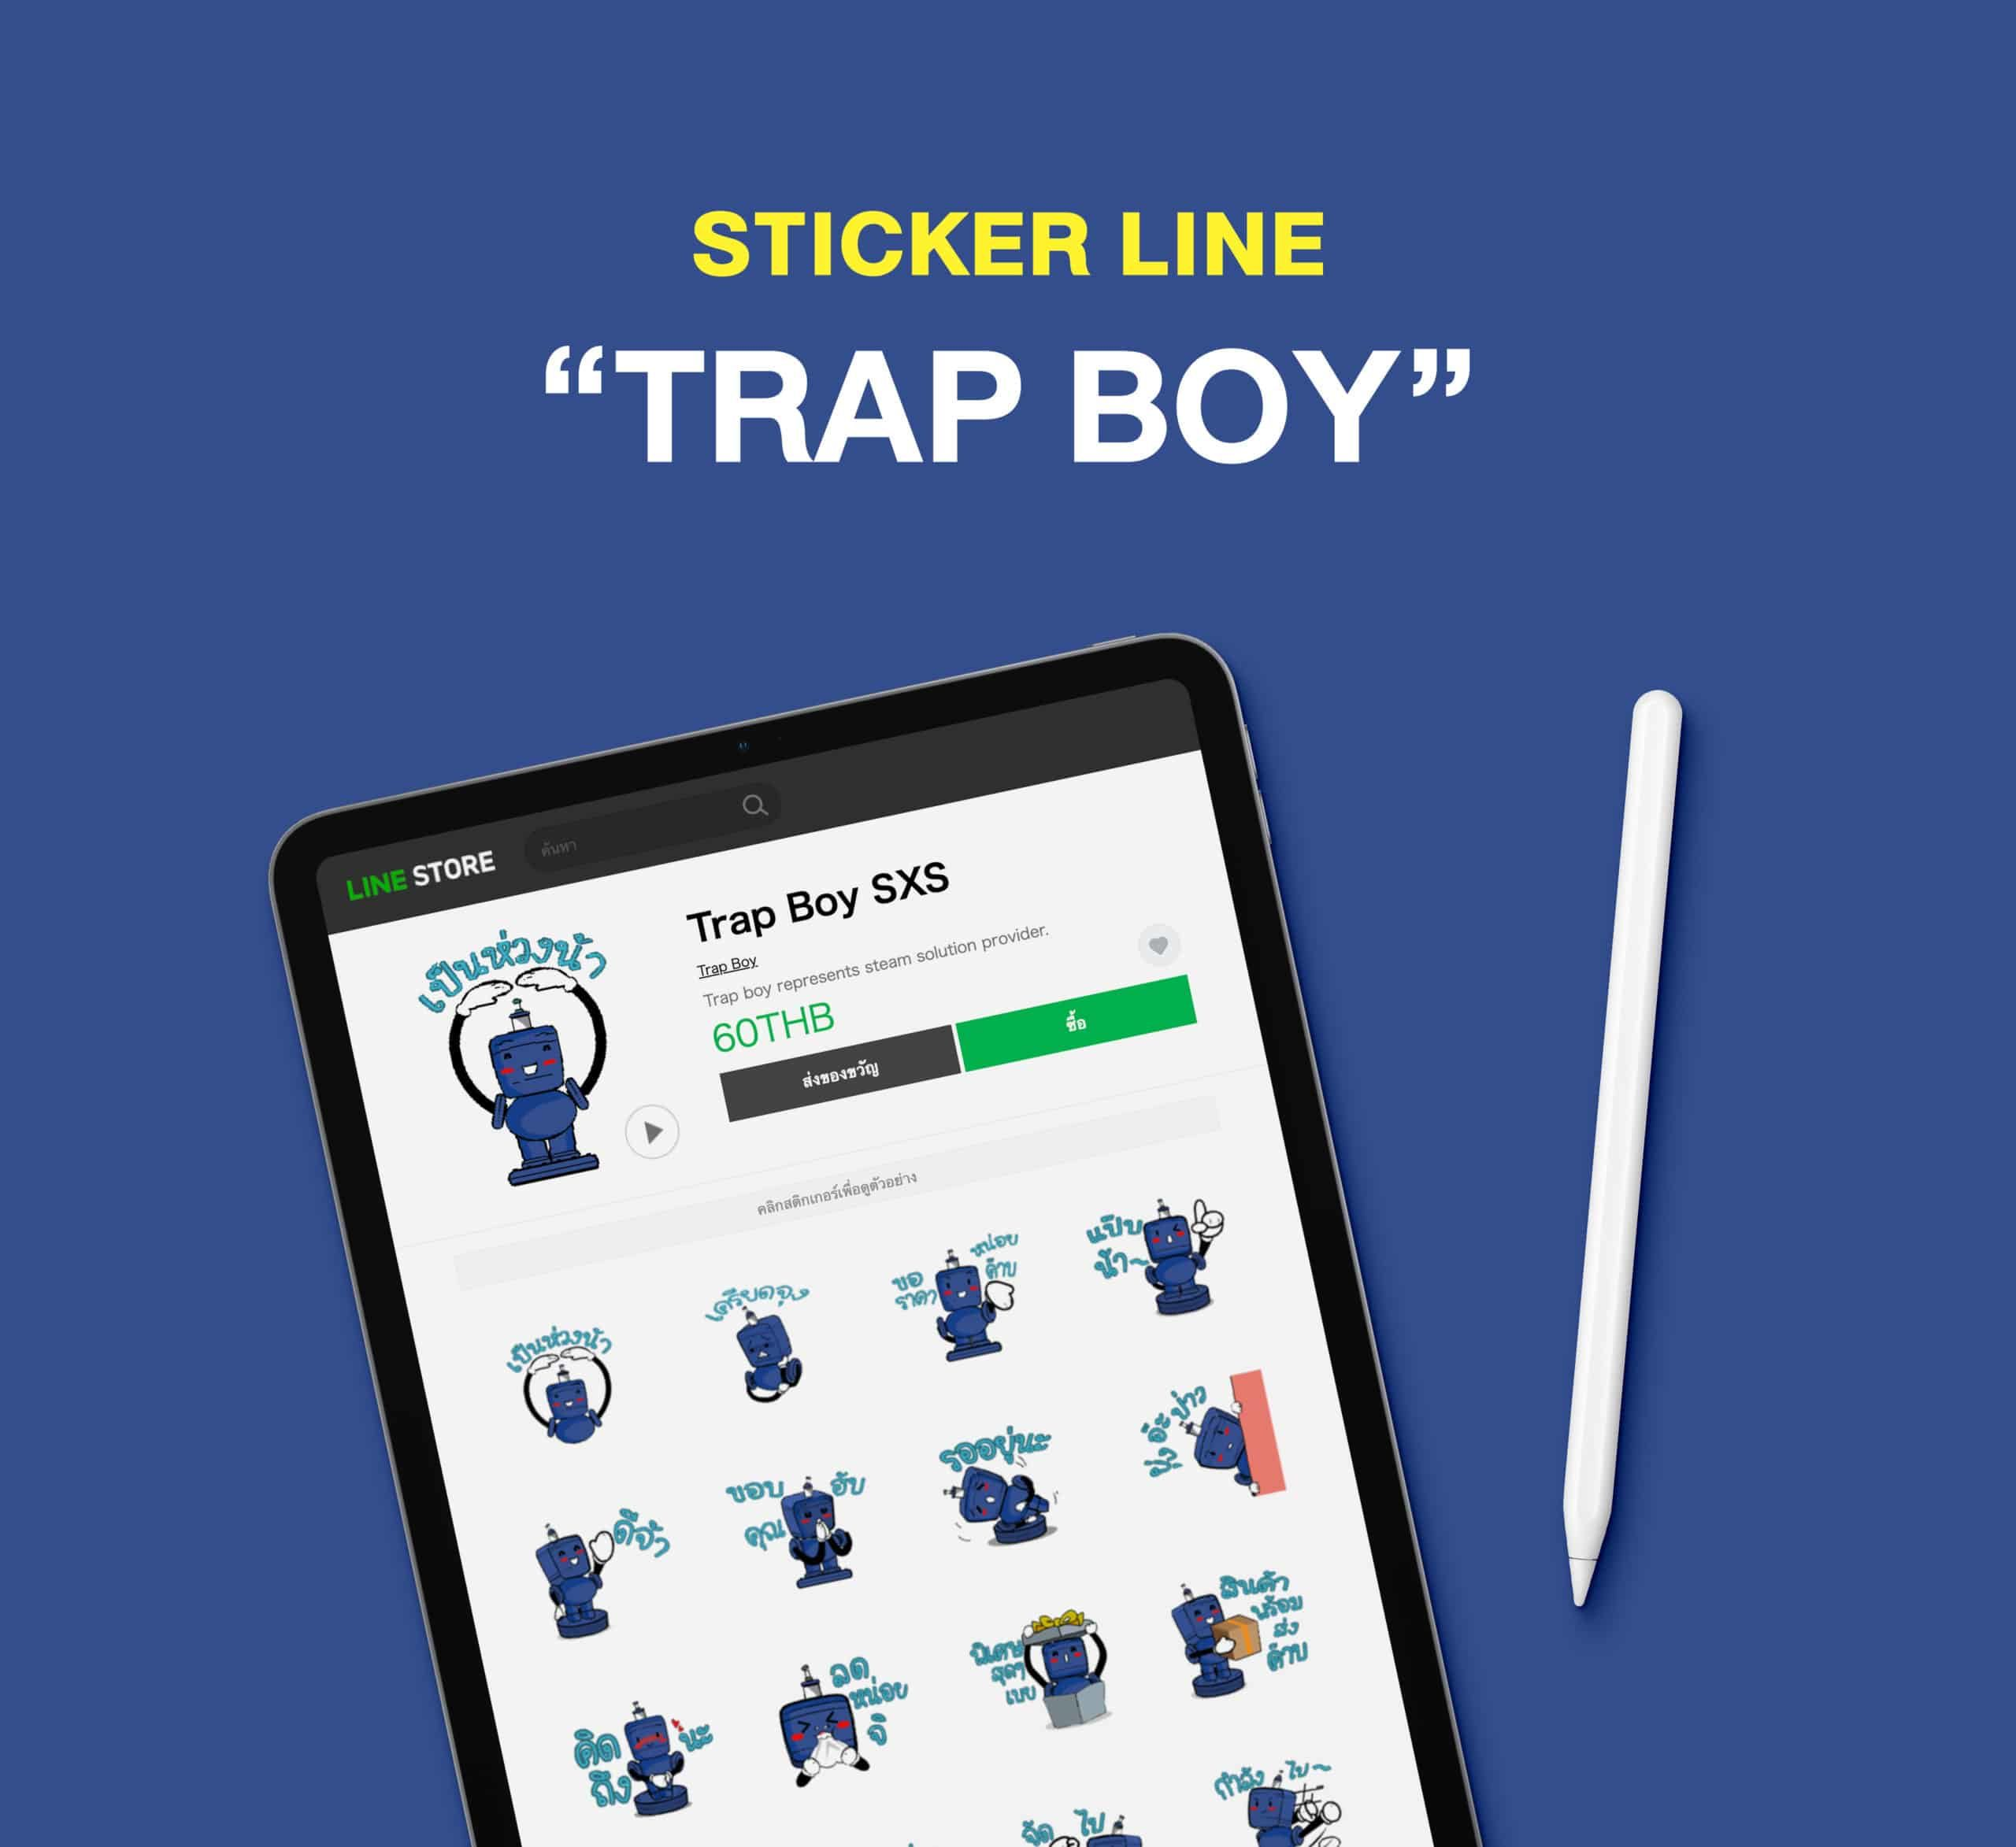 trapboy Sticker LINE Trap Boy